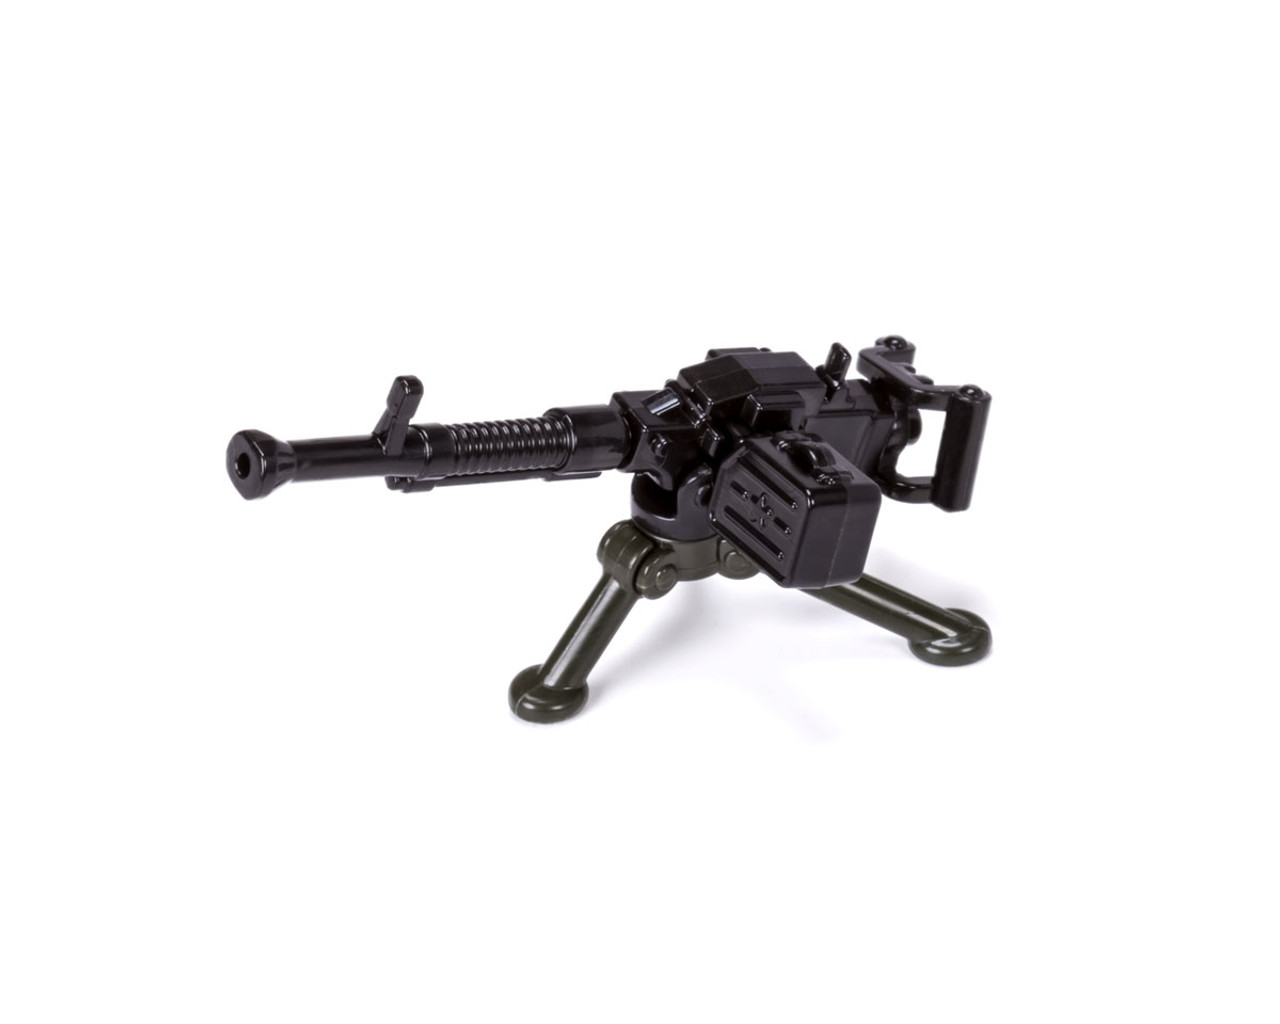 BrickArms DShK 12.7 x 108mm Machine Gun